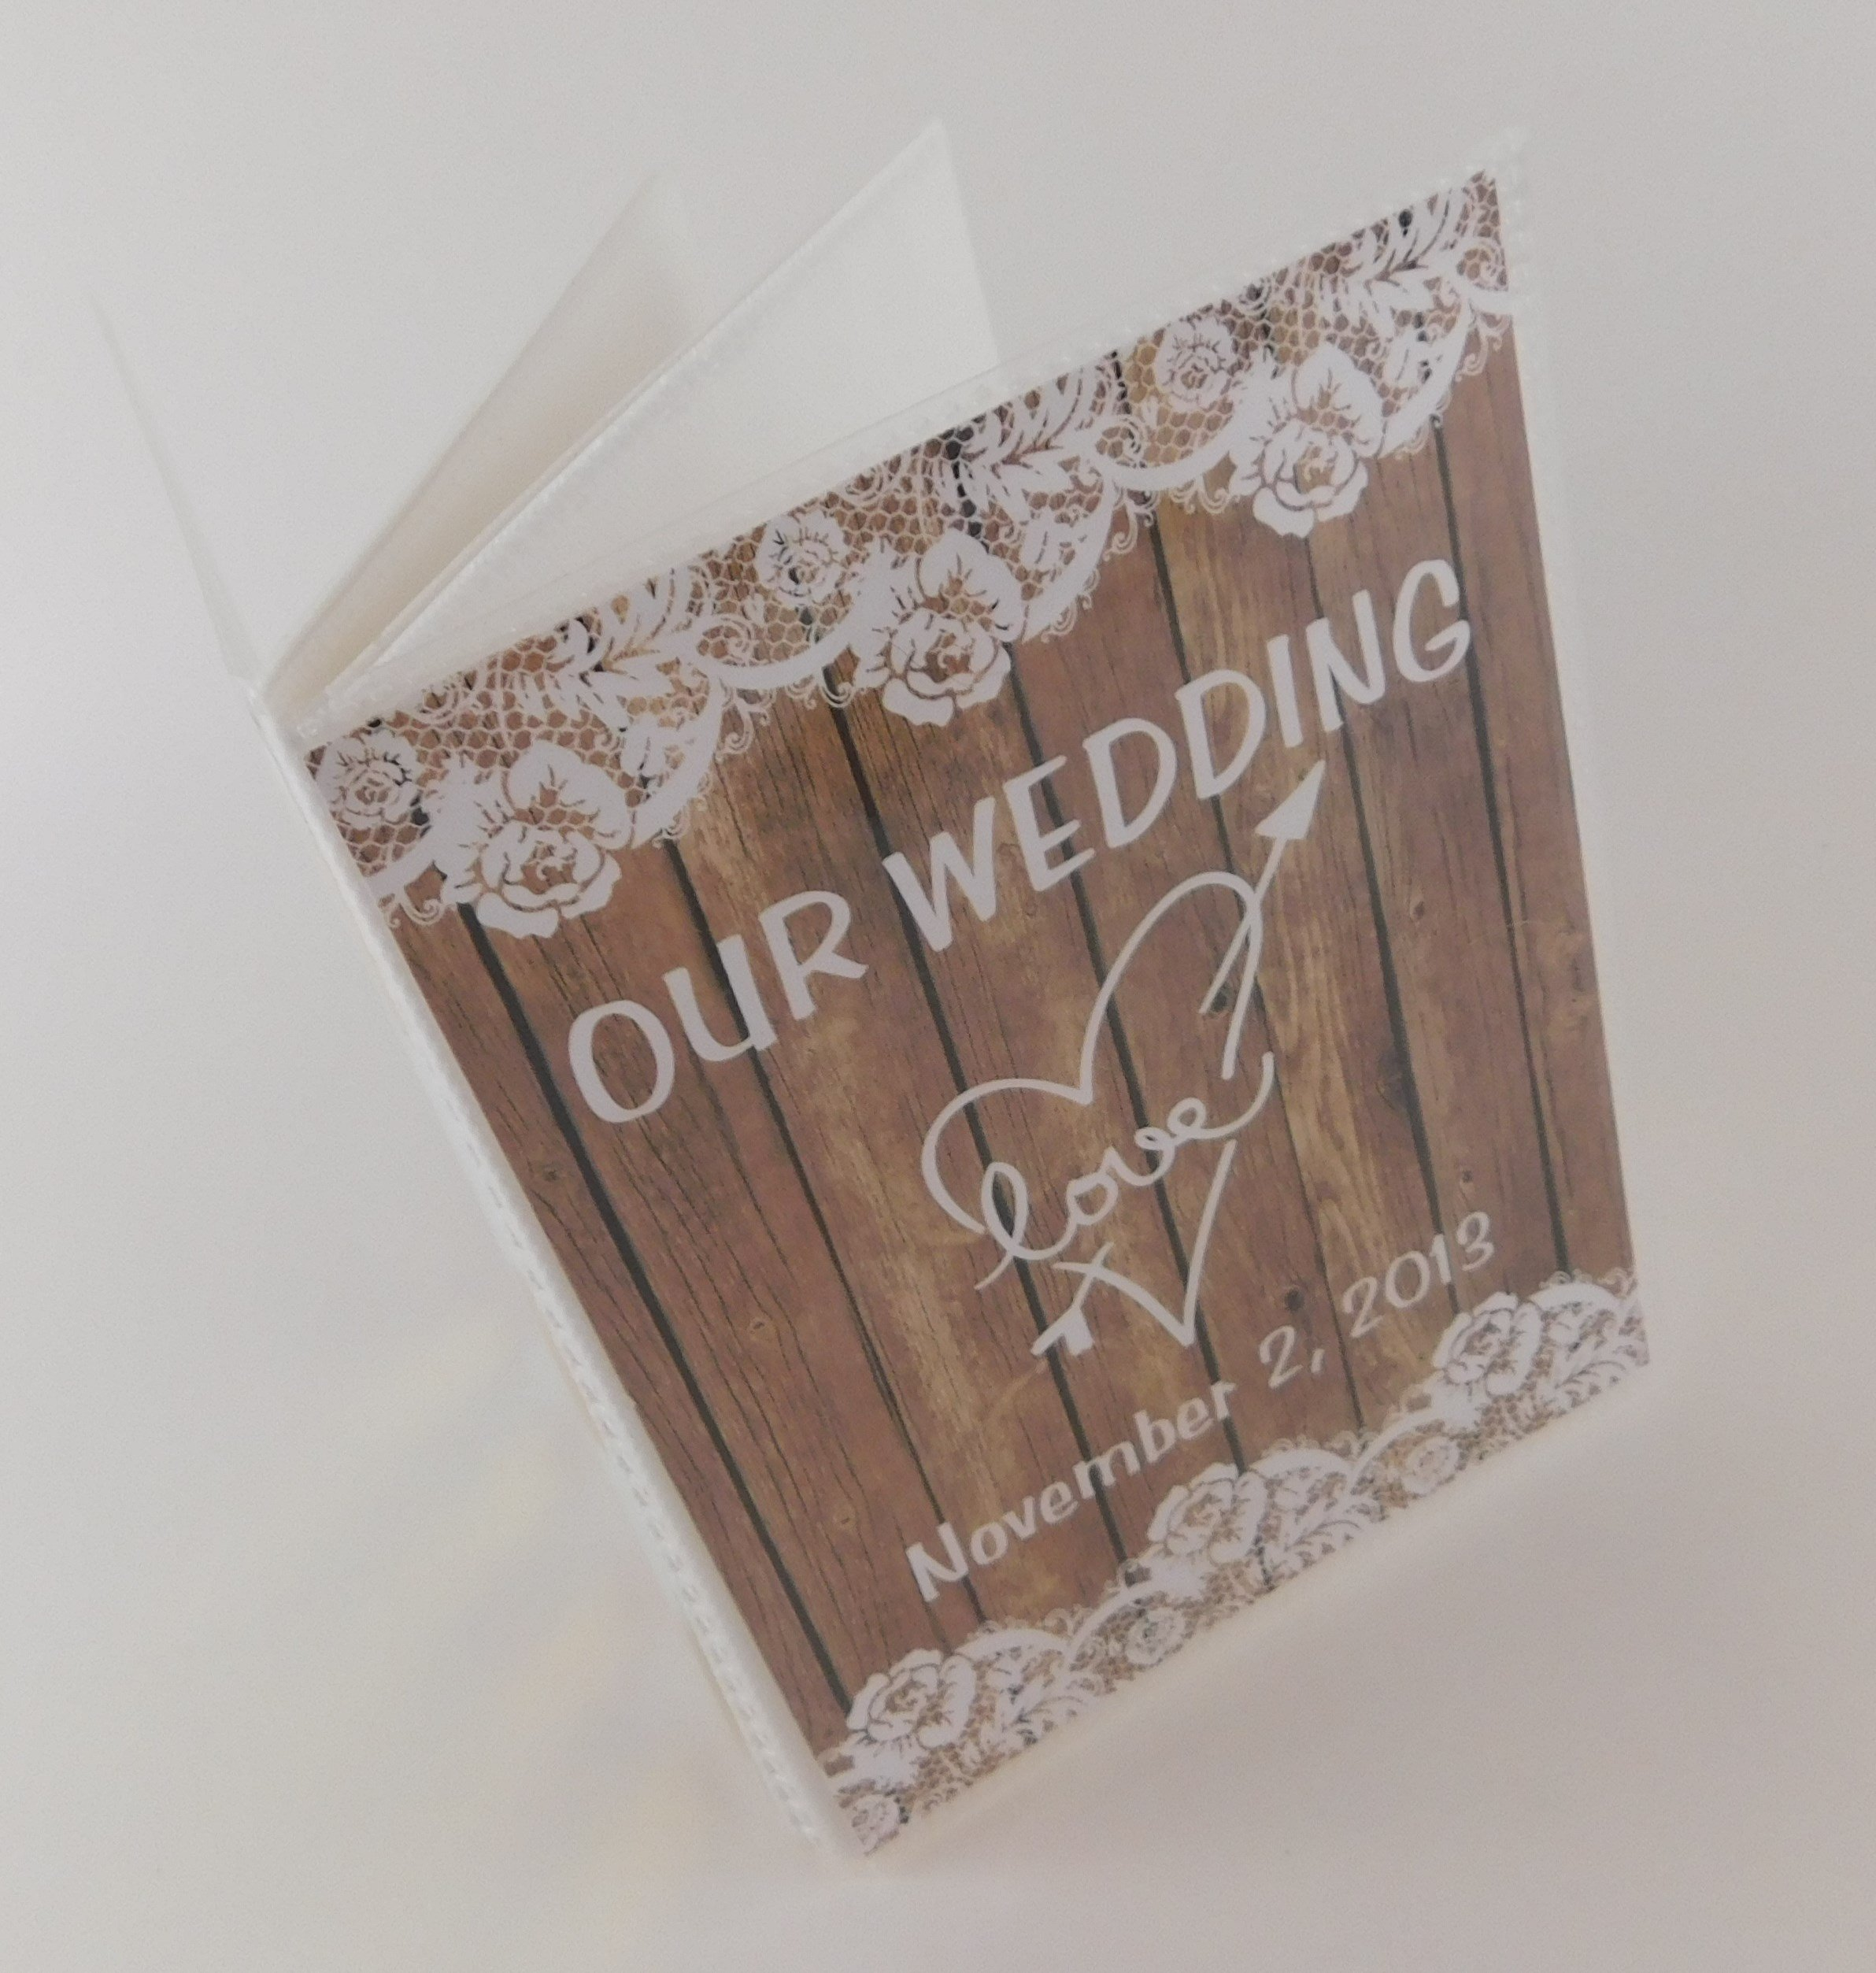 Our Wedding Photo Album IA#375 Personalized Rustic Bridal Shower Gift NOT REAL WOOD or LACE